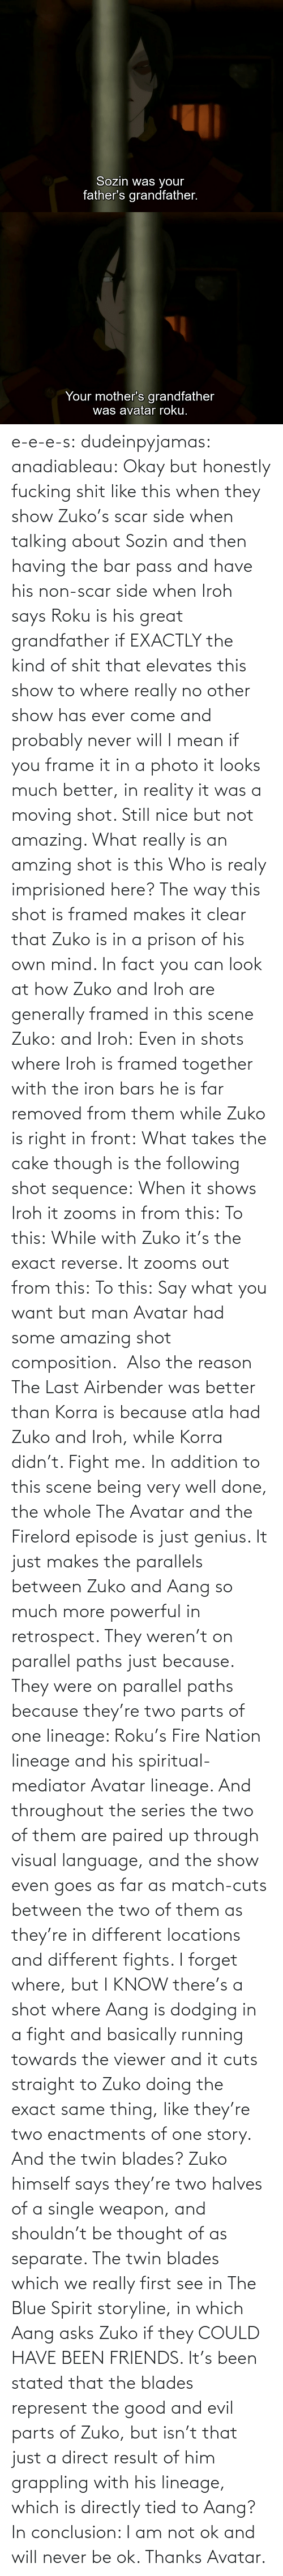 Thought: e-e-e-s: dudeinpyjamas:   anadiableau: Okay but honestly fucking shit like this when they show Zuko's scar side when talking about Sozin and then having the bar pass and have his non-scar side when Iroh says Roku is his great grandfather if EXACTLY the kind of shit that elevates this show to where really no other show has ever come and probably never will I mean if you frame it in a photo it looks much better, in reality it was a moving shot. Still nice but not amazing. What really is an amzing shot is this Who is realy imprisioned here? The way this shot is framed makes it clear that Zuko is in a prison of his own mind. In fact you can look at how Zuko and Iroh are generally framed in this scene Zuko: and Iroh: Even in shots where Iroh is framed together with the iron bars he is far removed from them while Zuko is right in front:  What takes the cake though is the following shot sequence: When it shows Iroh it zooms in from this: To this: While with Zuko it's the exact reverse. It zooms out from this: To this: Say what you want but man Avatar had some amazing shot composition.   Also the reason The Last Airbender was better than Korra is because atla had Zuko and Iroh, while Korra didn't. Fight me.    In addition to this scene being very well done, the whole The Avatar and the Firelord episode is just genius.  It just makes the parallels between Zuko and Aang so much more powerful in retrospect.  They weren't on parallel paths just because.  They were on parallel paths because they're two parts of one lineage: Roku's Fire Nation lineage and his spiritual-mediator Avatar lineage.  And throughout the series the two of them are paired up through visual language, and the show even goes as far as match-cuts between the two of them as they're in different locations and different fights.  I forget where, but I KNOW there's a shot where Aang is dodging in a fight and basically running towards the viewer and it cuts straight to Zuko doing the exact same thing, like they're two enactments of one story.   And the twin blades?  Zuko himself says they're two halves of a single weapon, and shouldn't be thought of as separate.  The twin blades which we really first see in The Blue Spirit storyline, in which Aang asks Zuko if they COULD HAVE BEEN FRIENDS.  It's been stated that the blades represent the good and evil parts of Zuko, but isn't that just a direct result of him grappling with his lineage, which is directly tied to Aang? In conclusion: I am not ok and will never be ok.  Thanks Avatar.